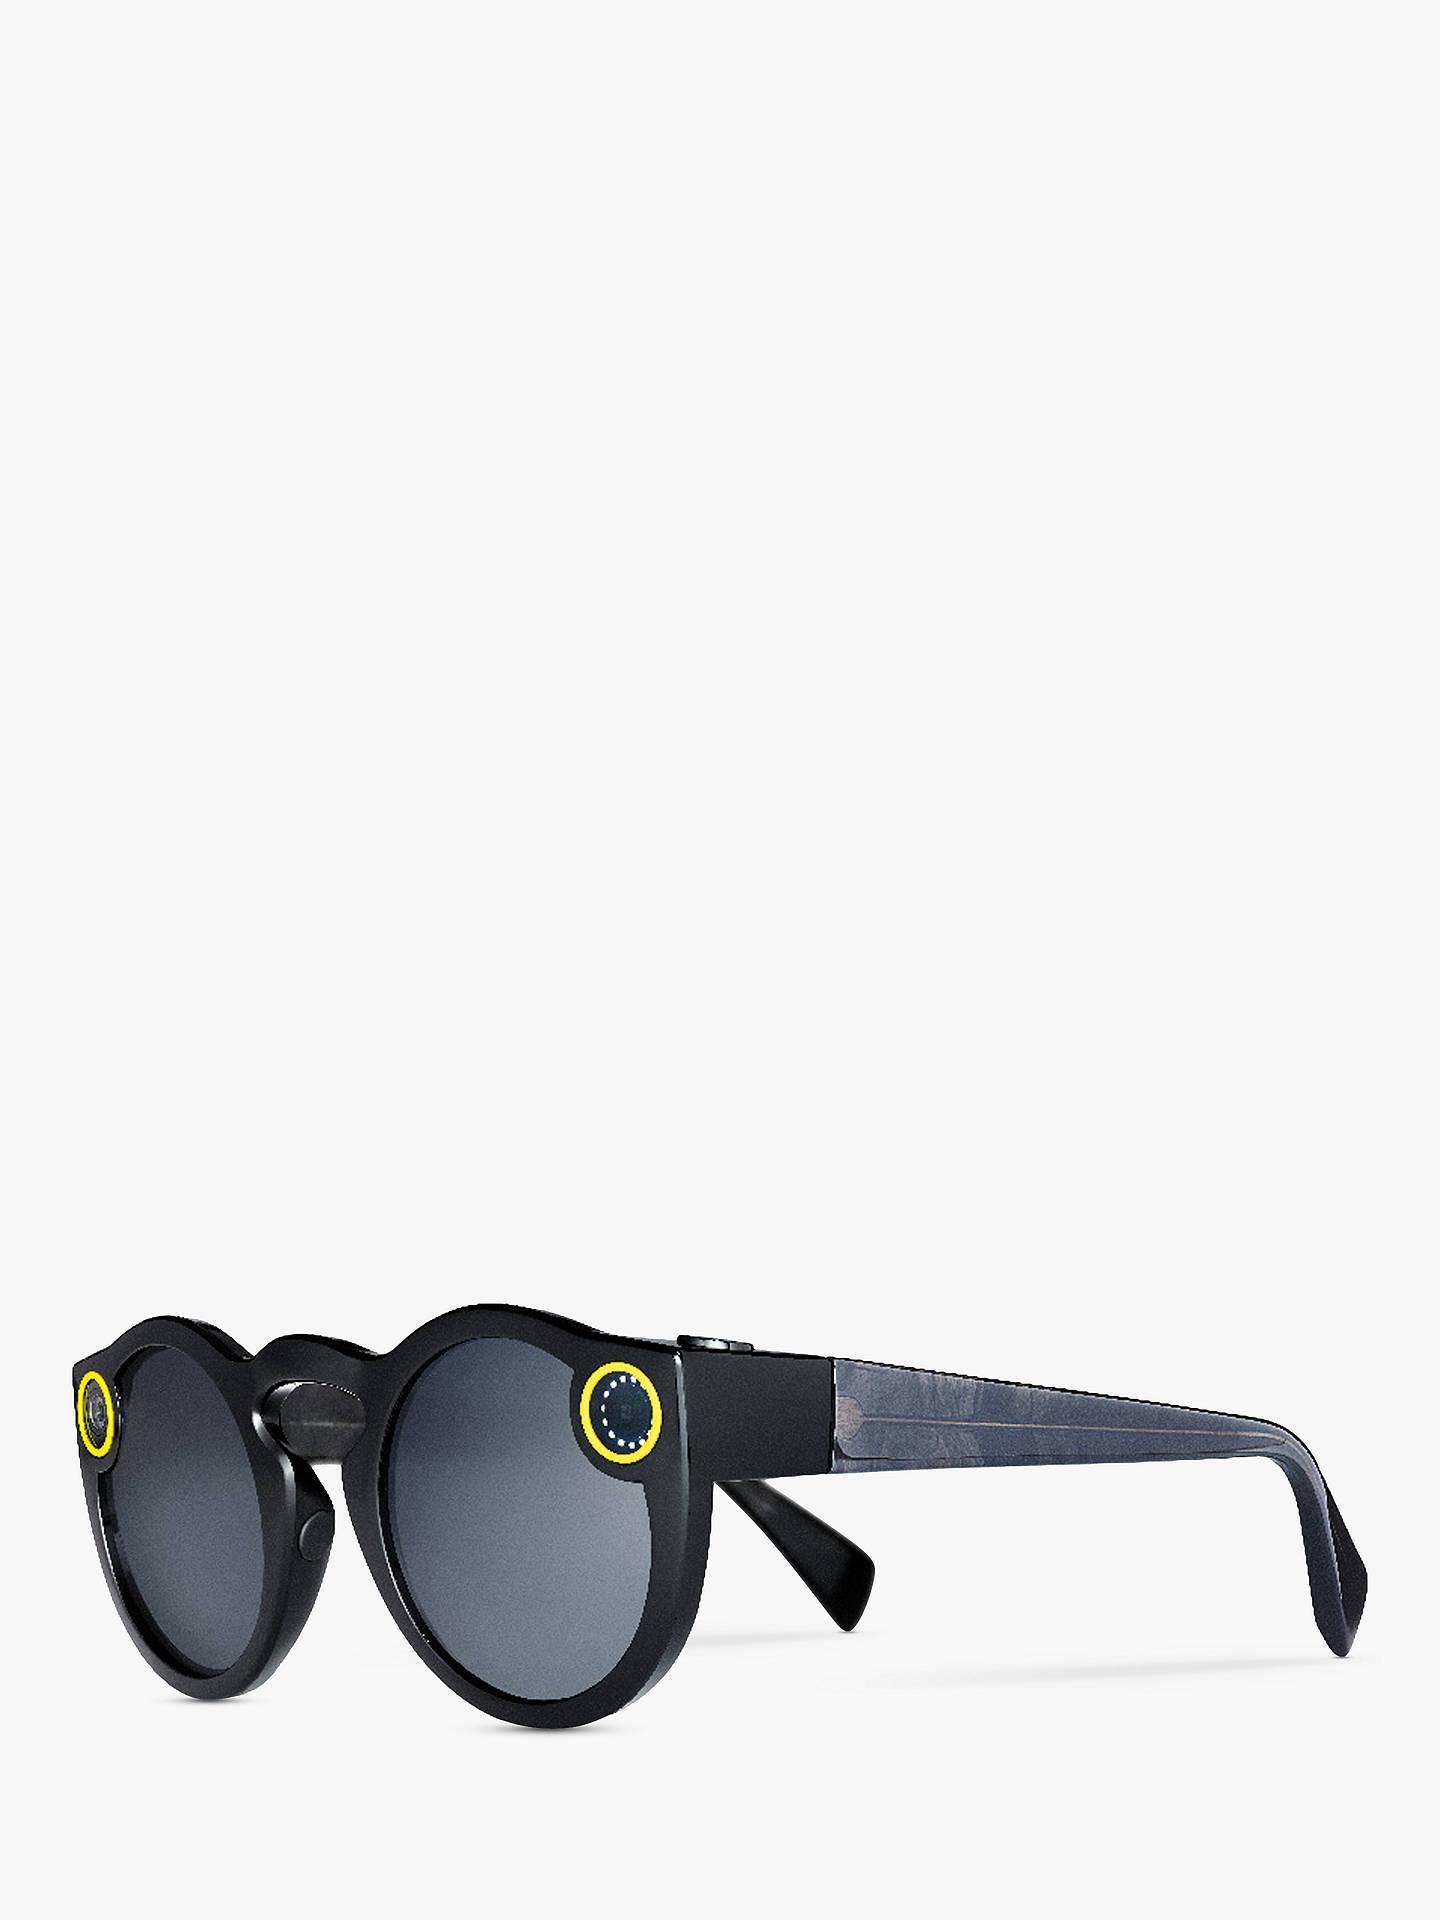 43a343985aea Snap Inc. Spectacles